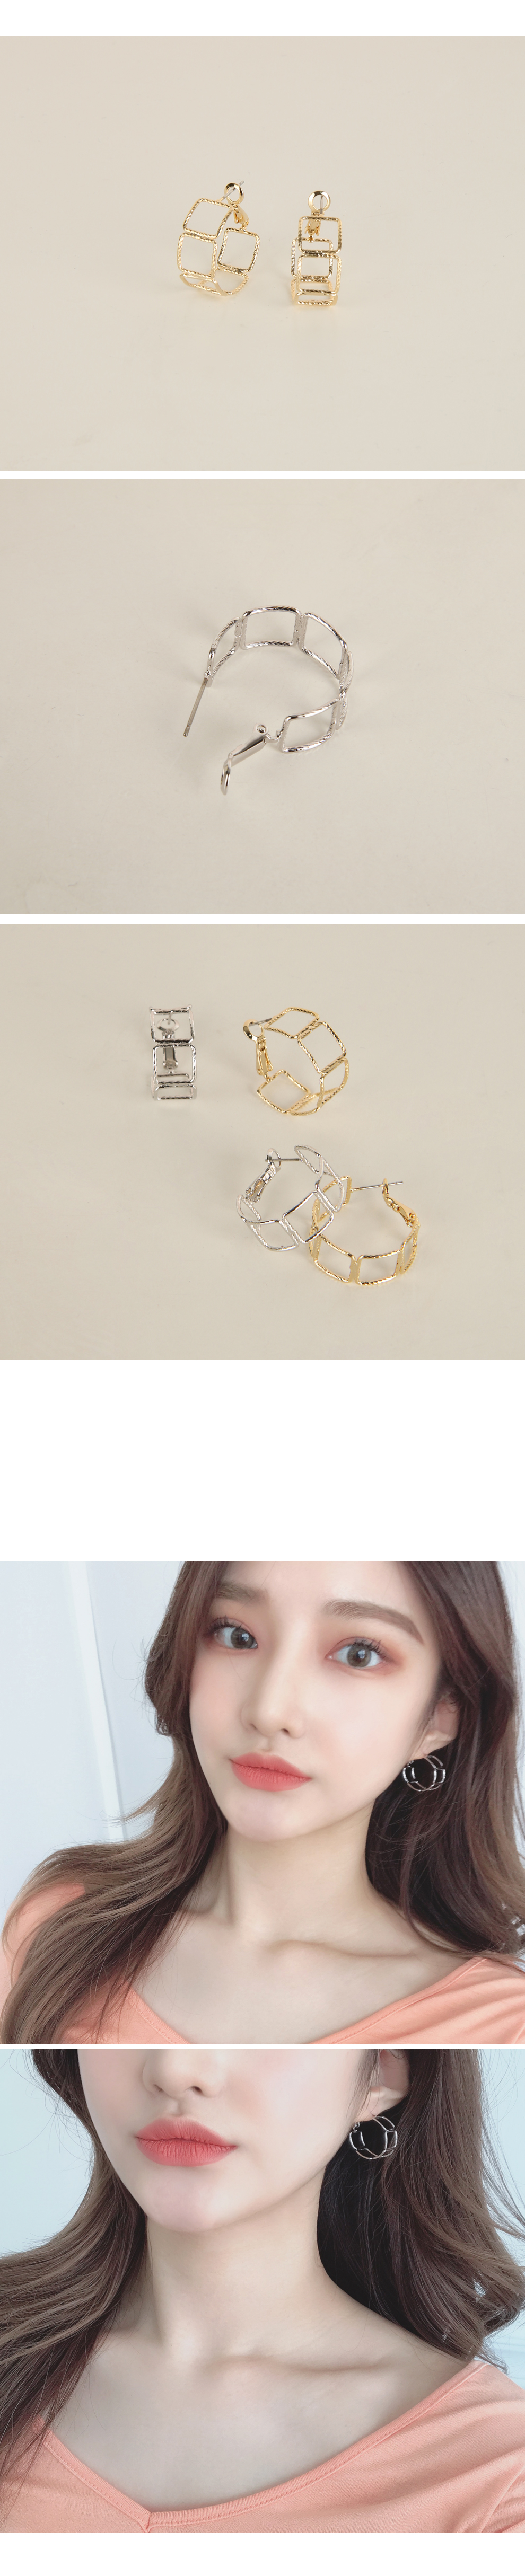 Leon chain earrings